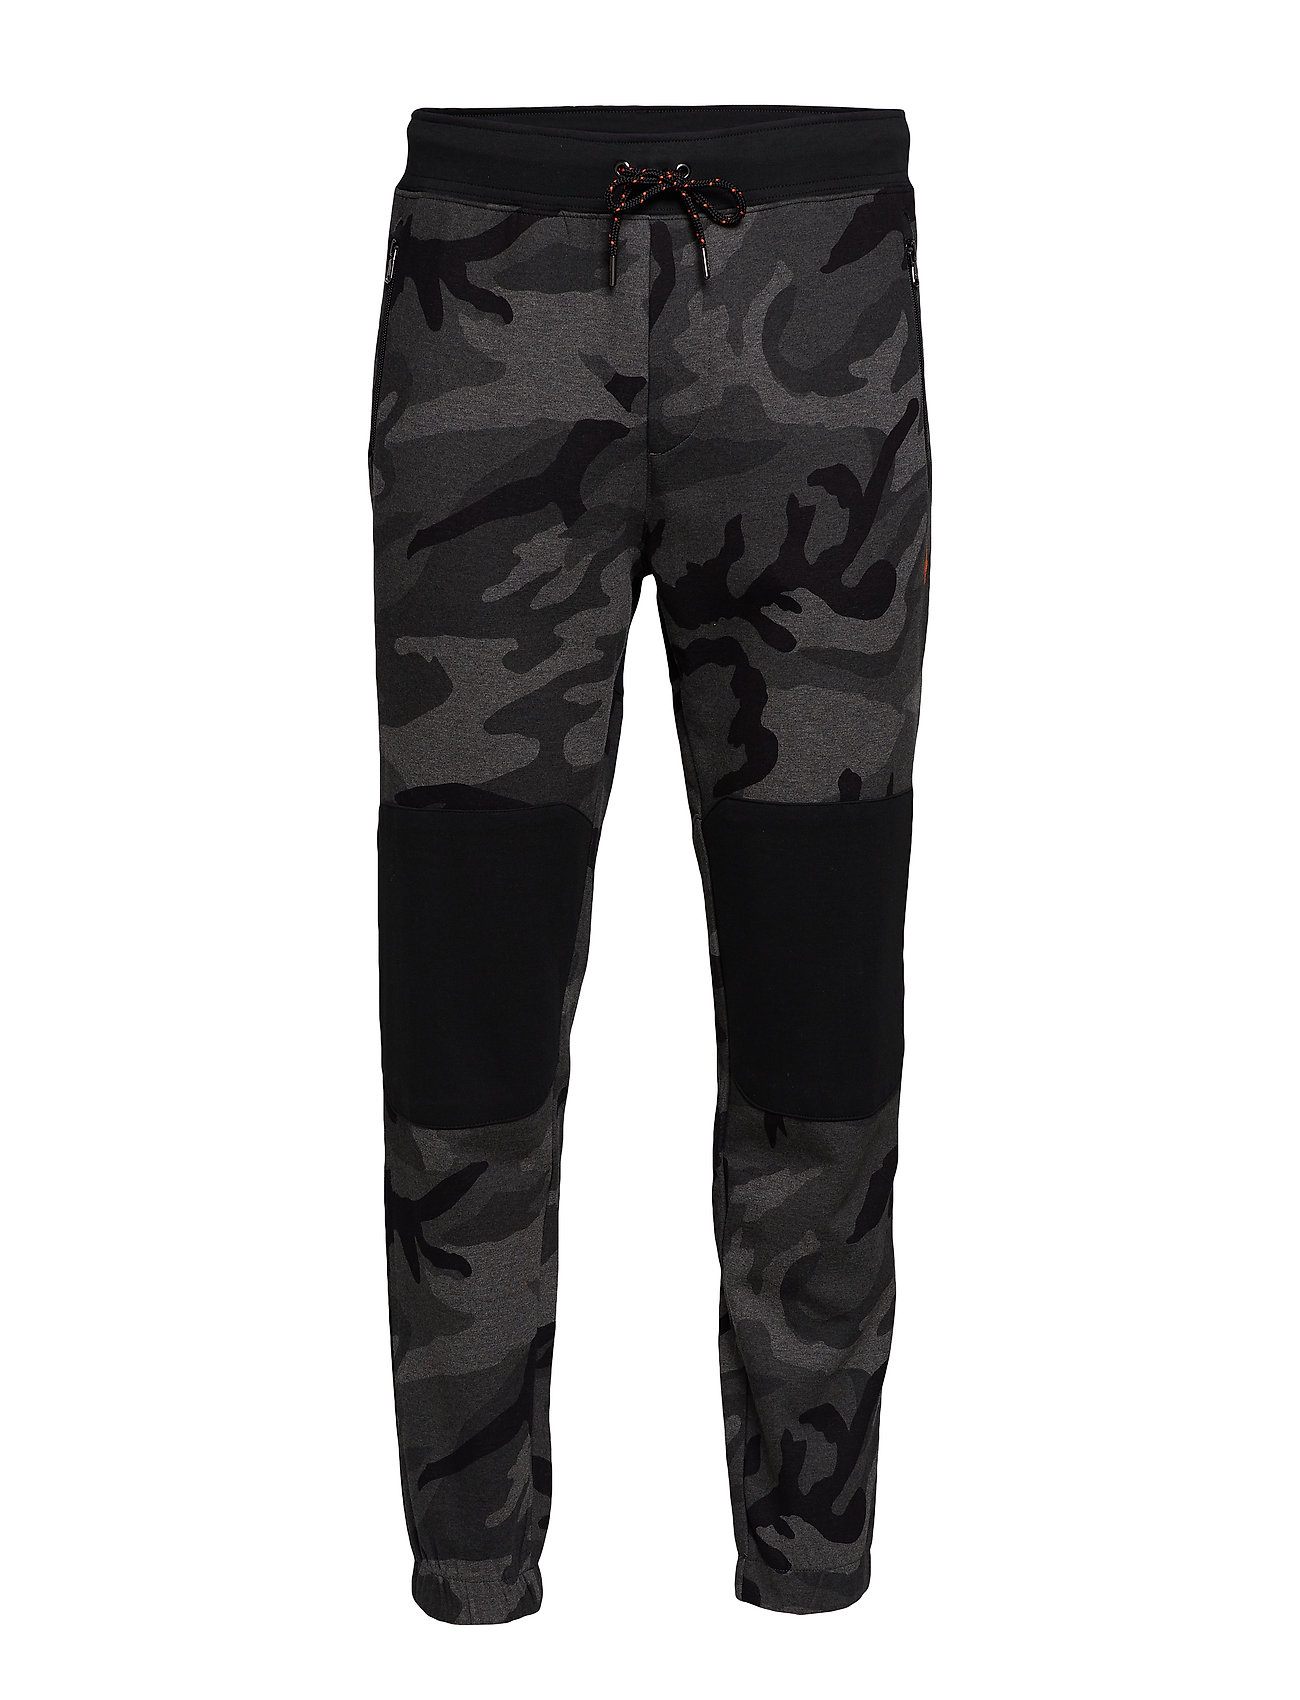 Polo Ralph Lauren PANTM7-ATHLETIC-PANT - RL CHARCOAL CAMO